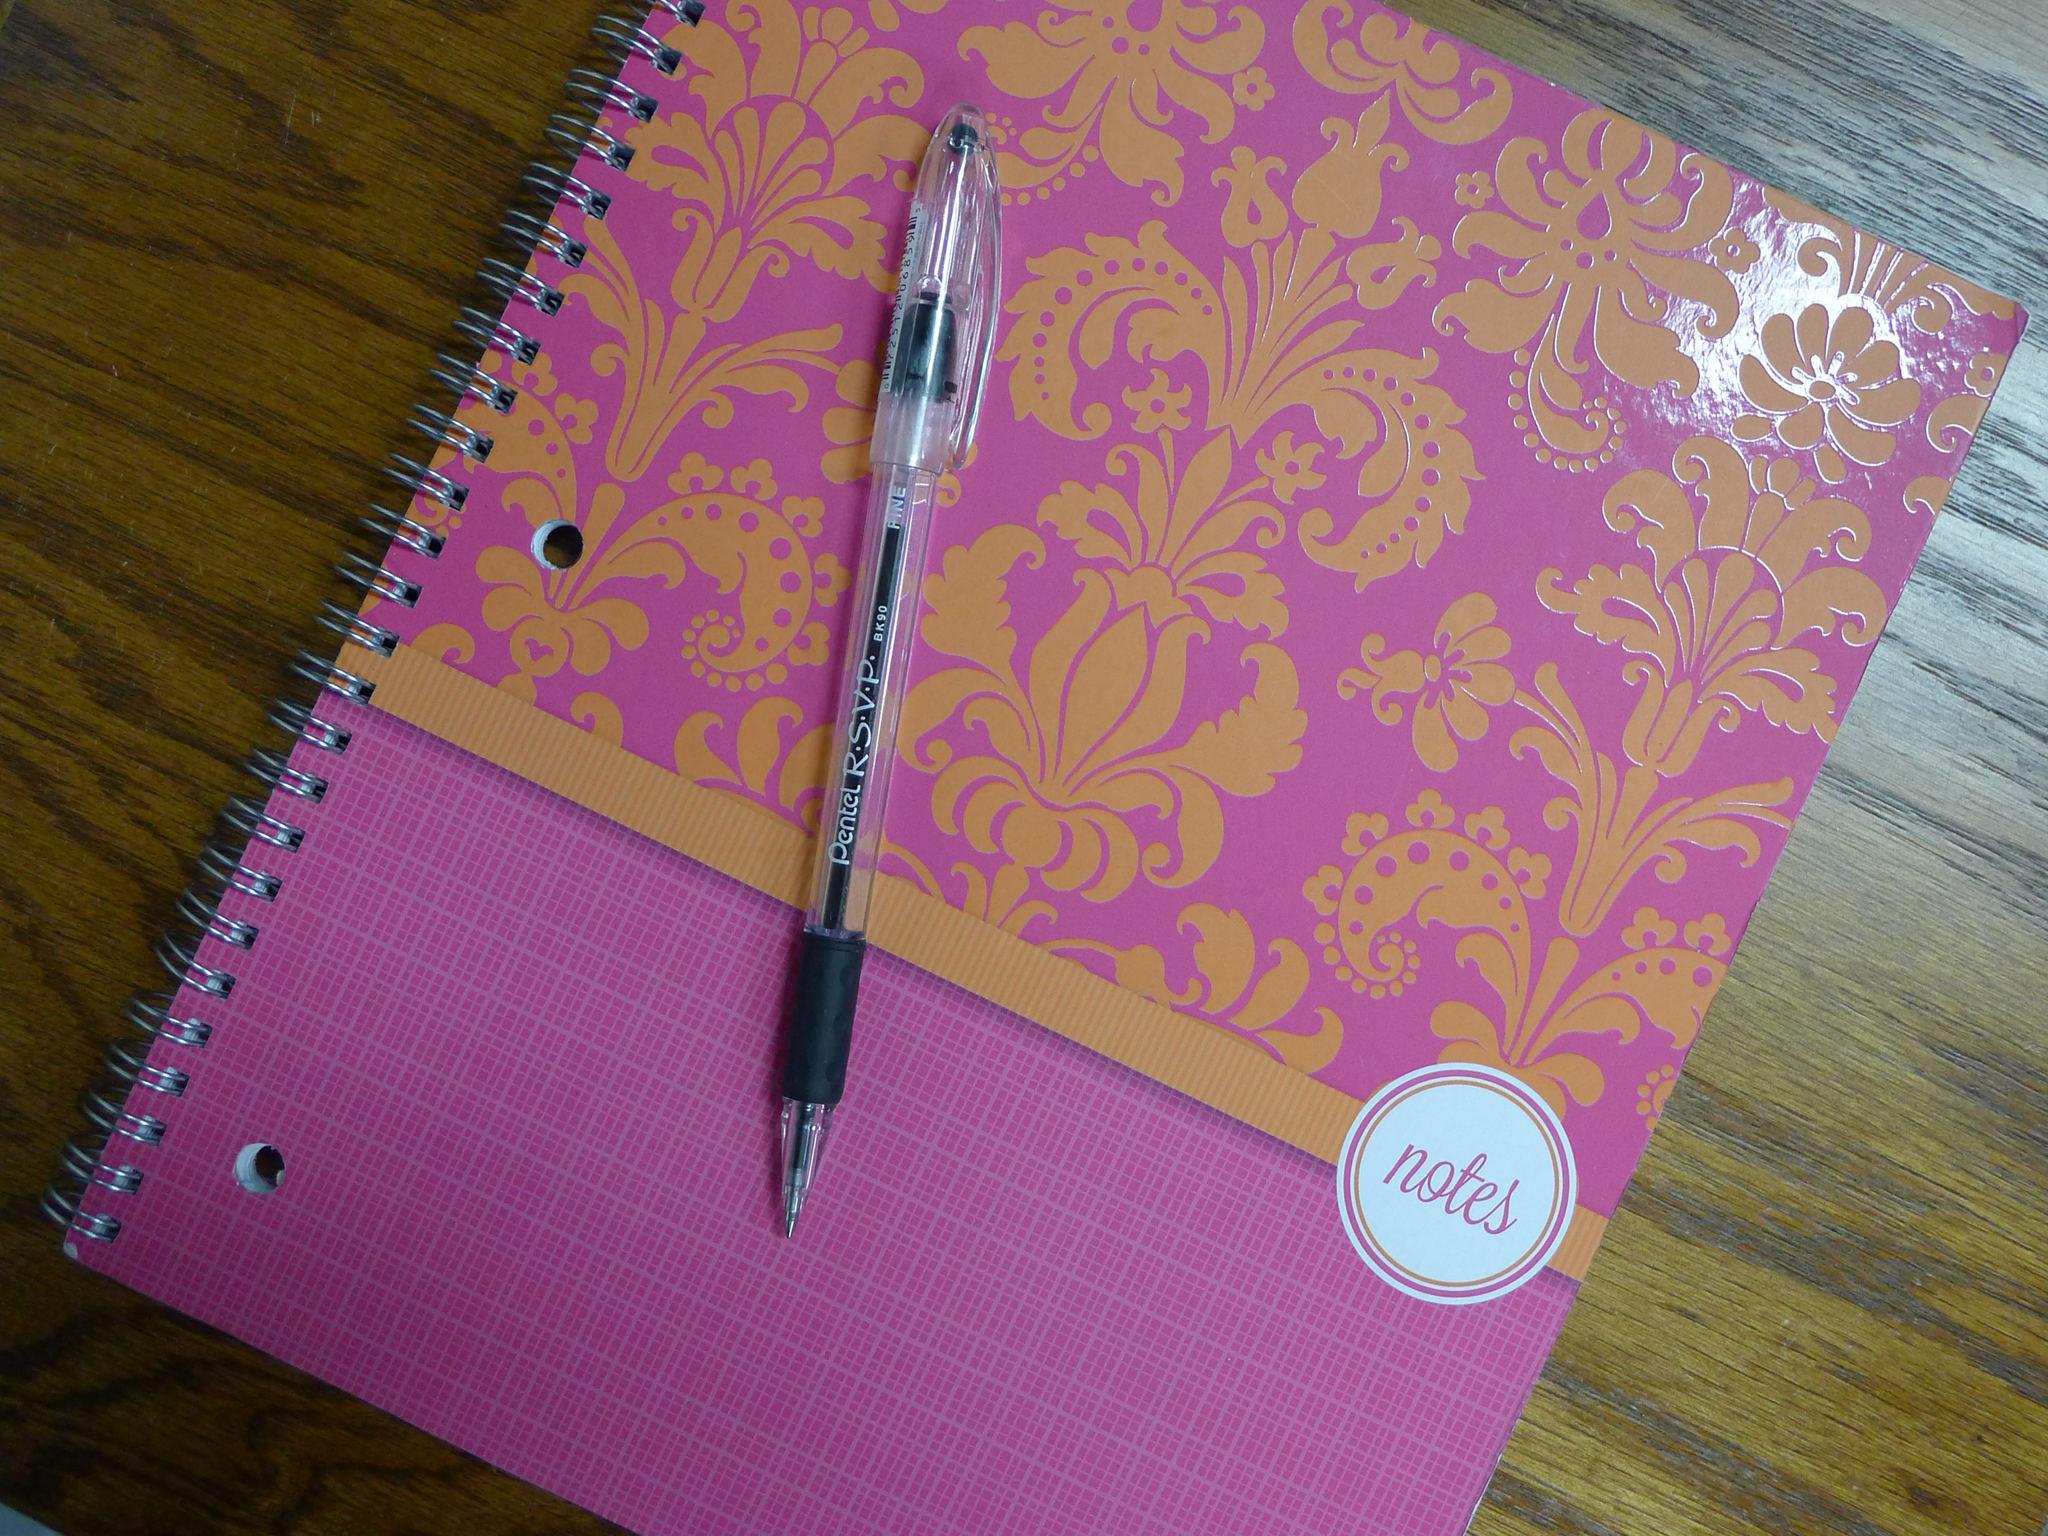 A notebook and pen to jot down thoughts.